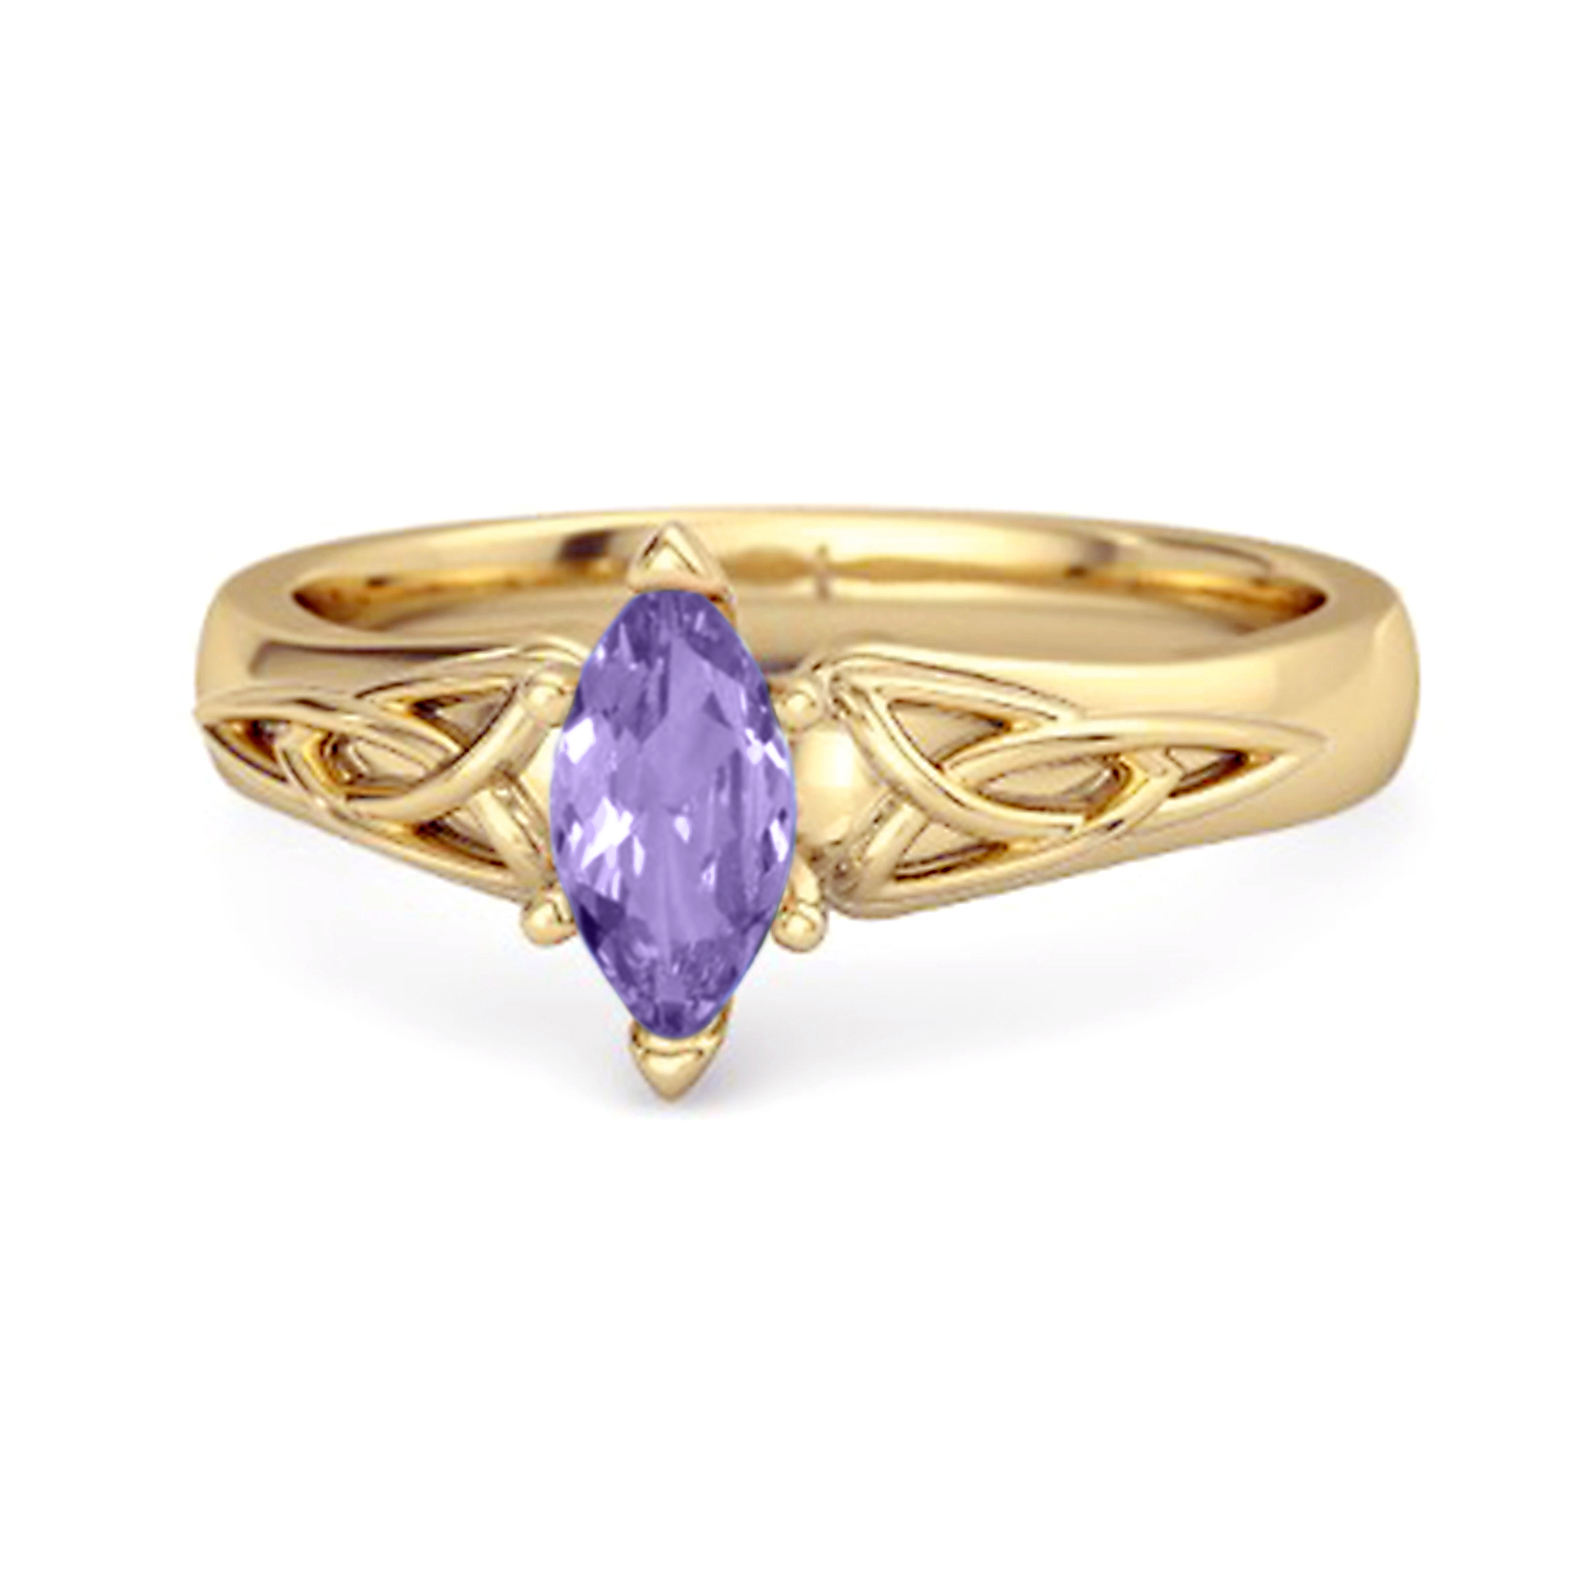 Celtic 0.25 Cts Amethyst Ring 925 Sterling Silver Trinity Knot Band Design Ring